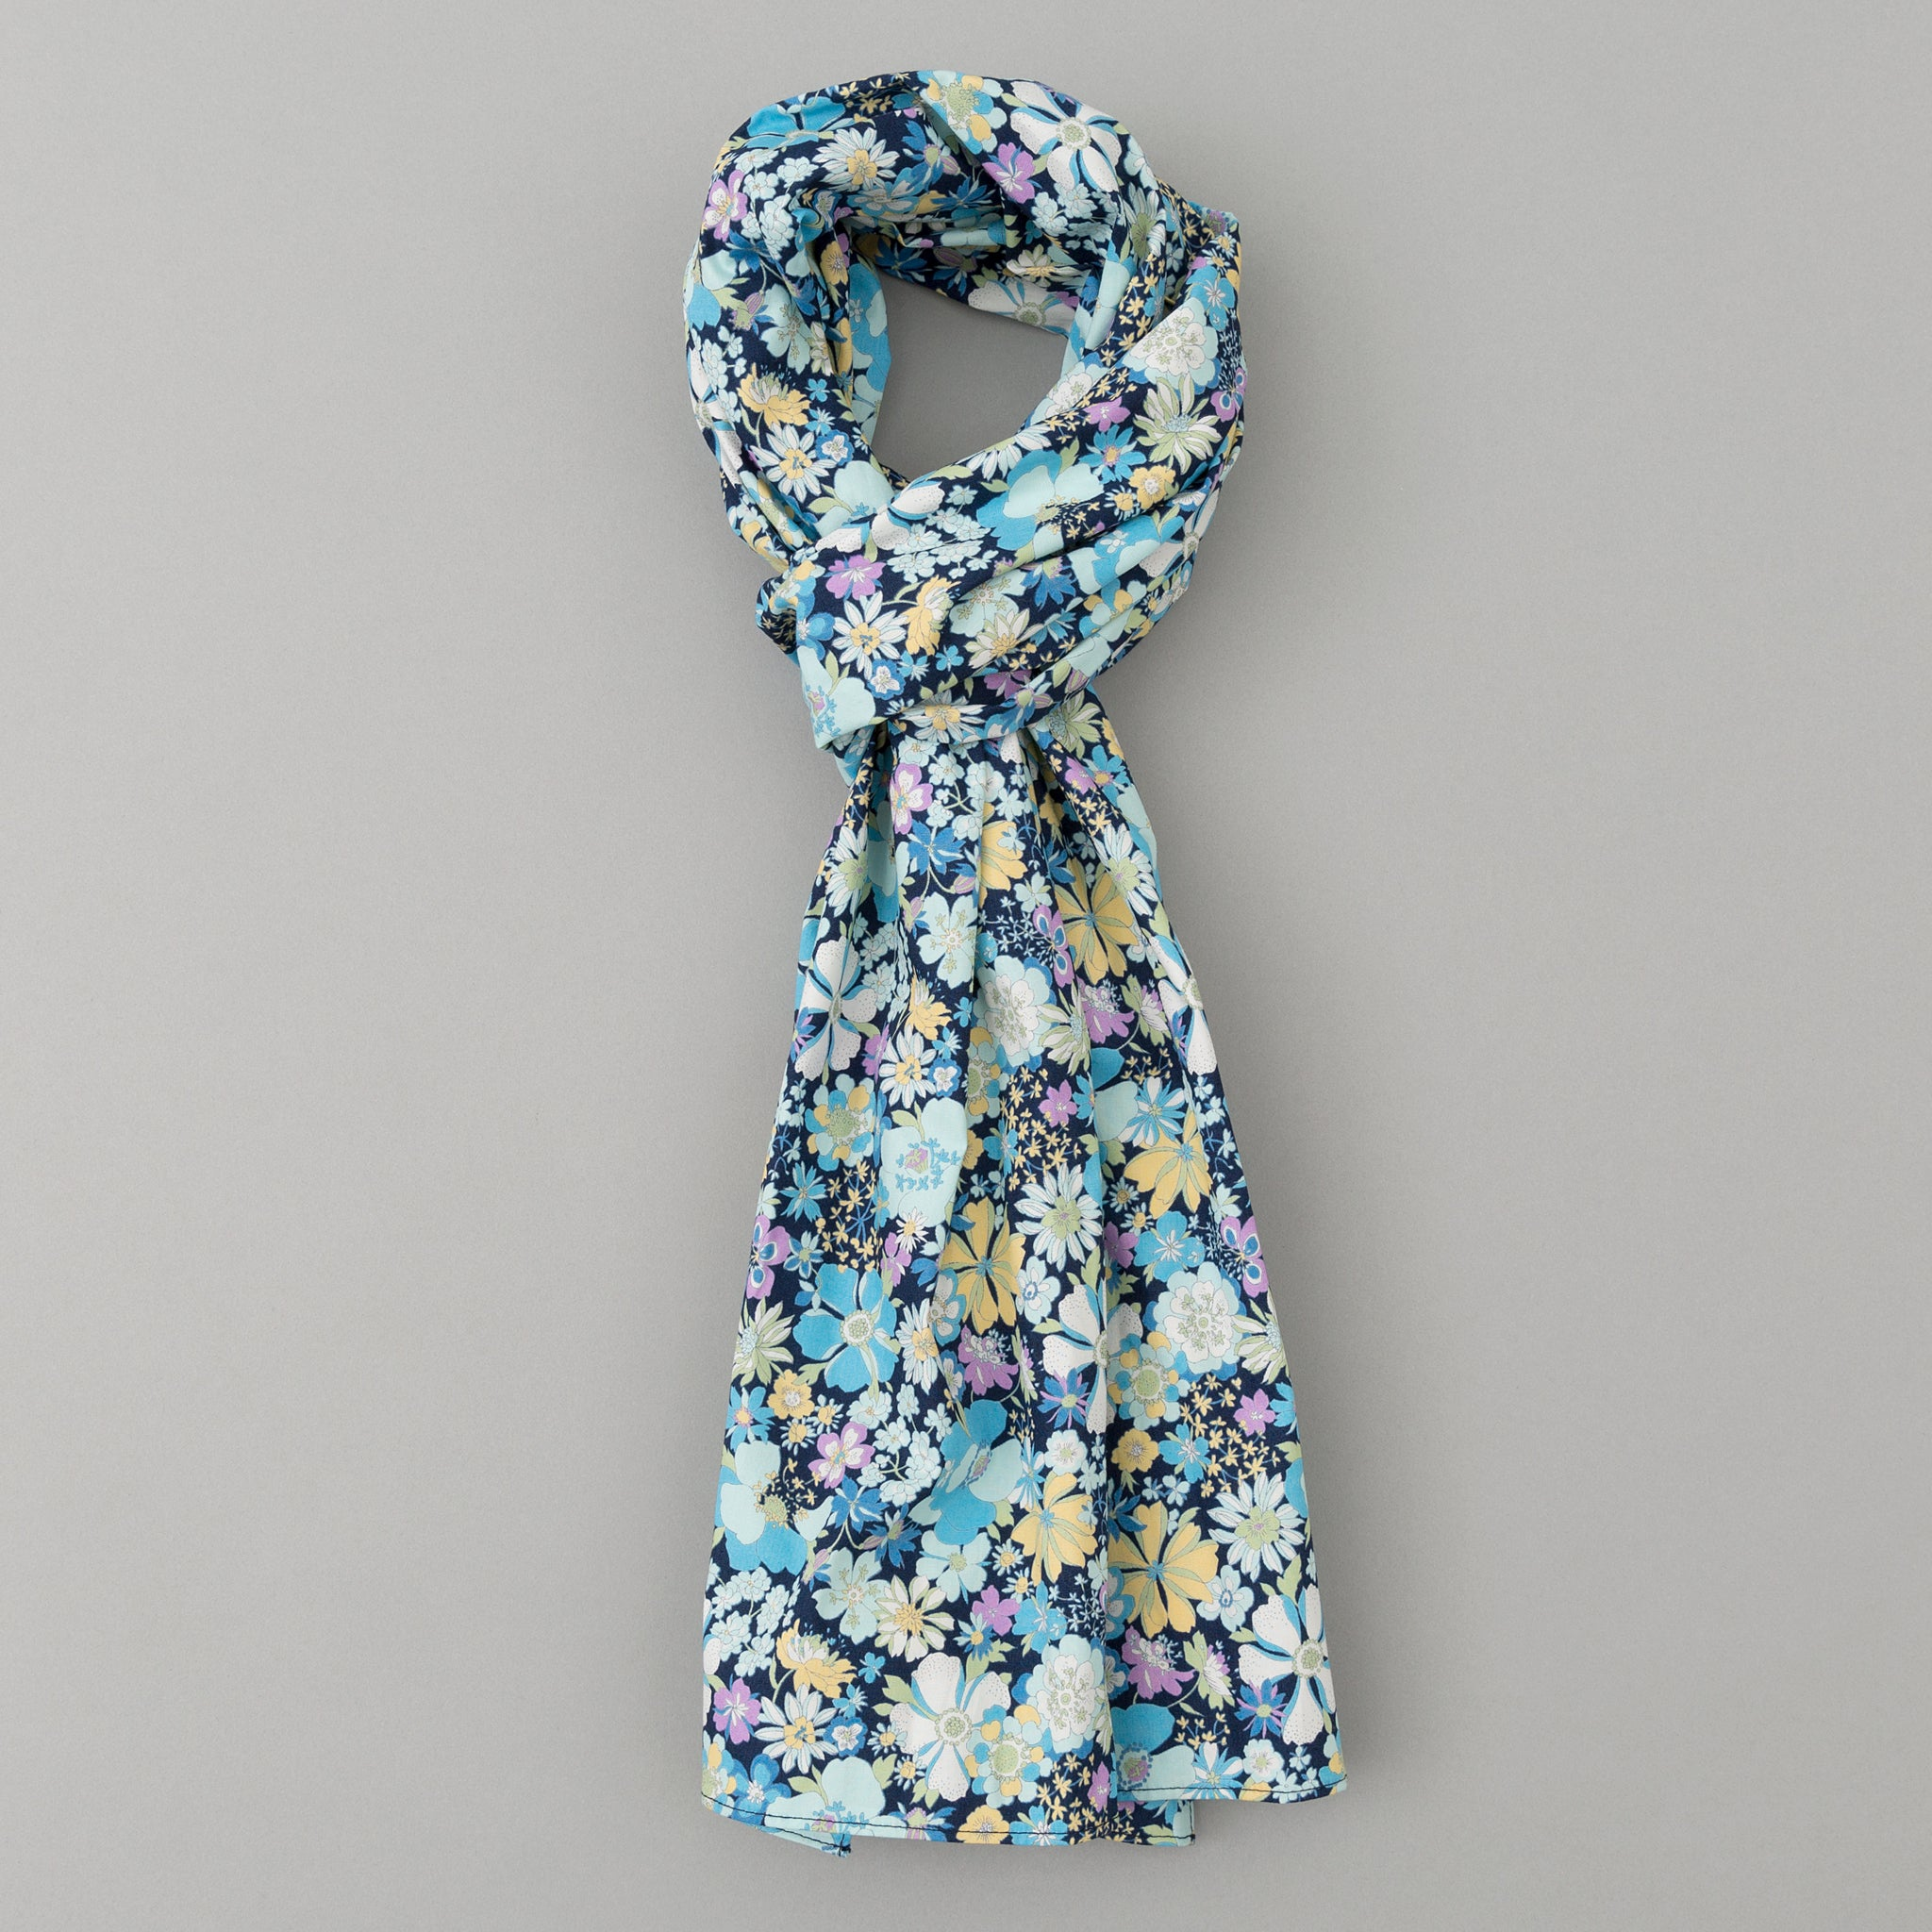 The Hill-Side - Psychedelic Floral Print Scarf, Blue - SC1-490 - image 1